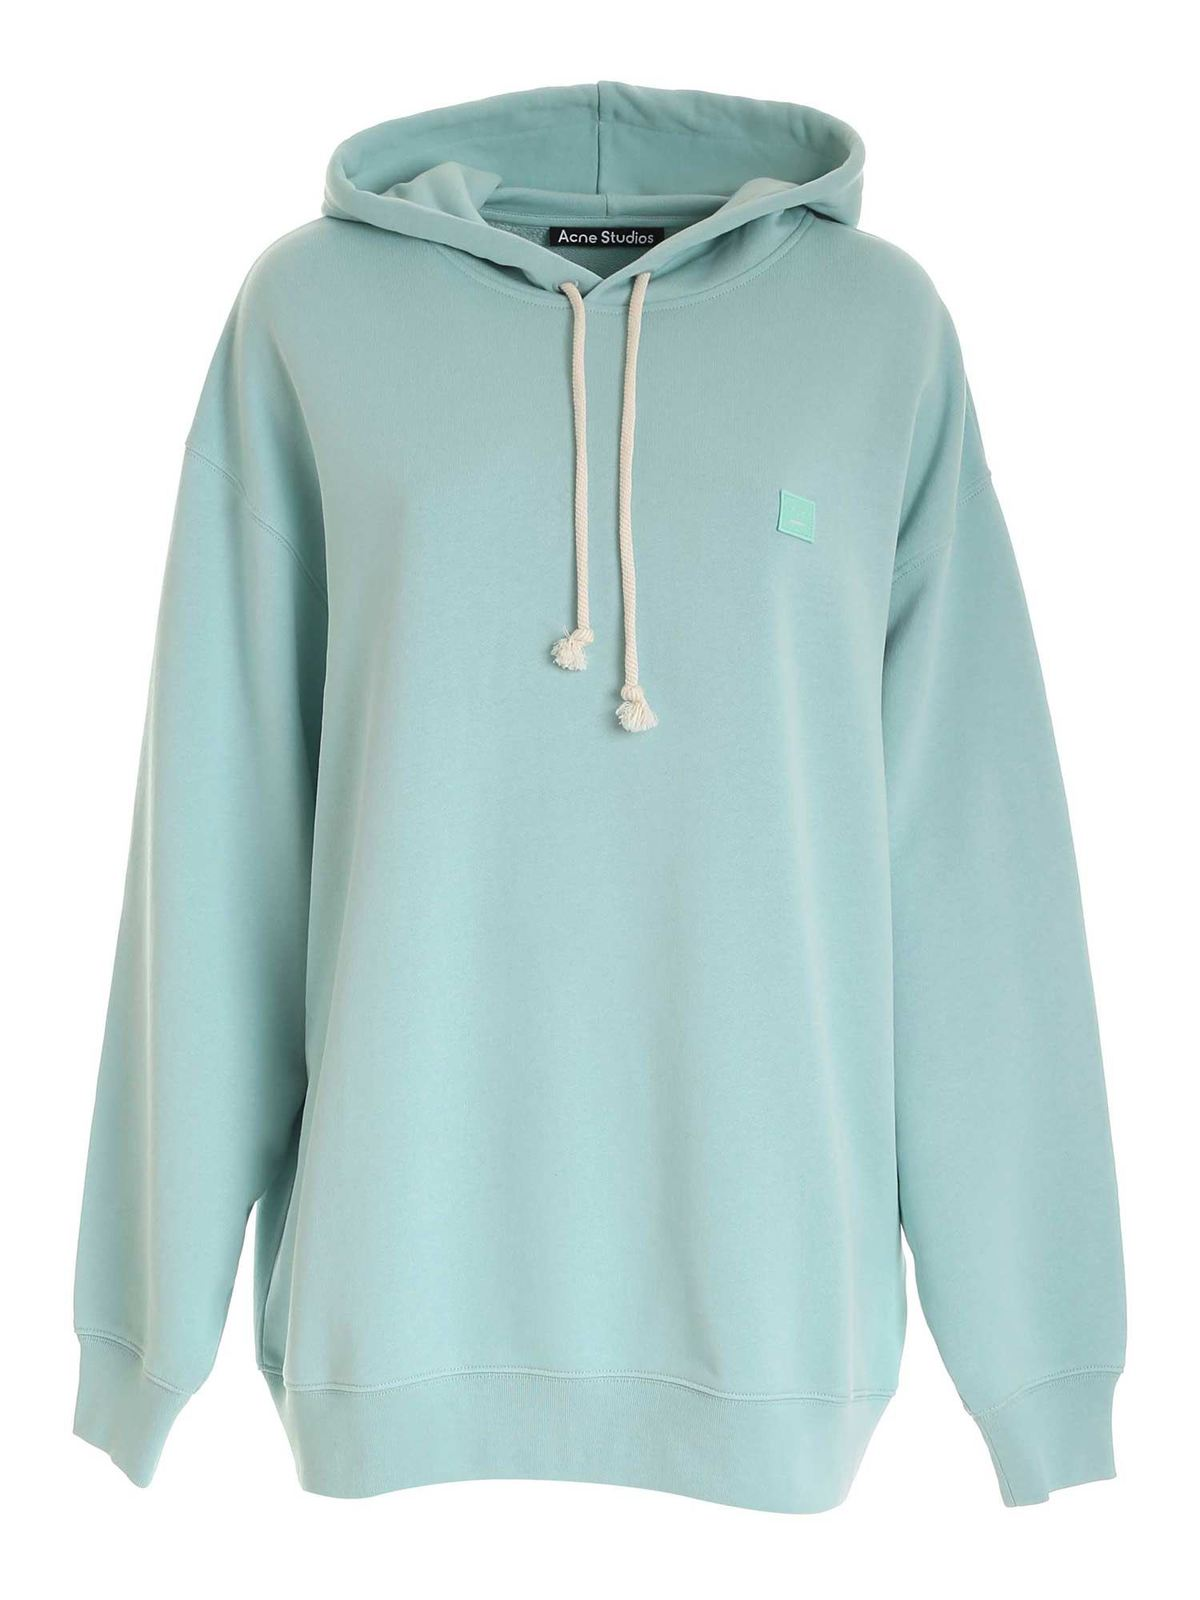 Acne Studios LOGO SWEATSHIRT IN SPEARMINT GREEN COLOR